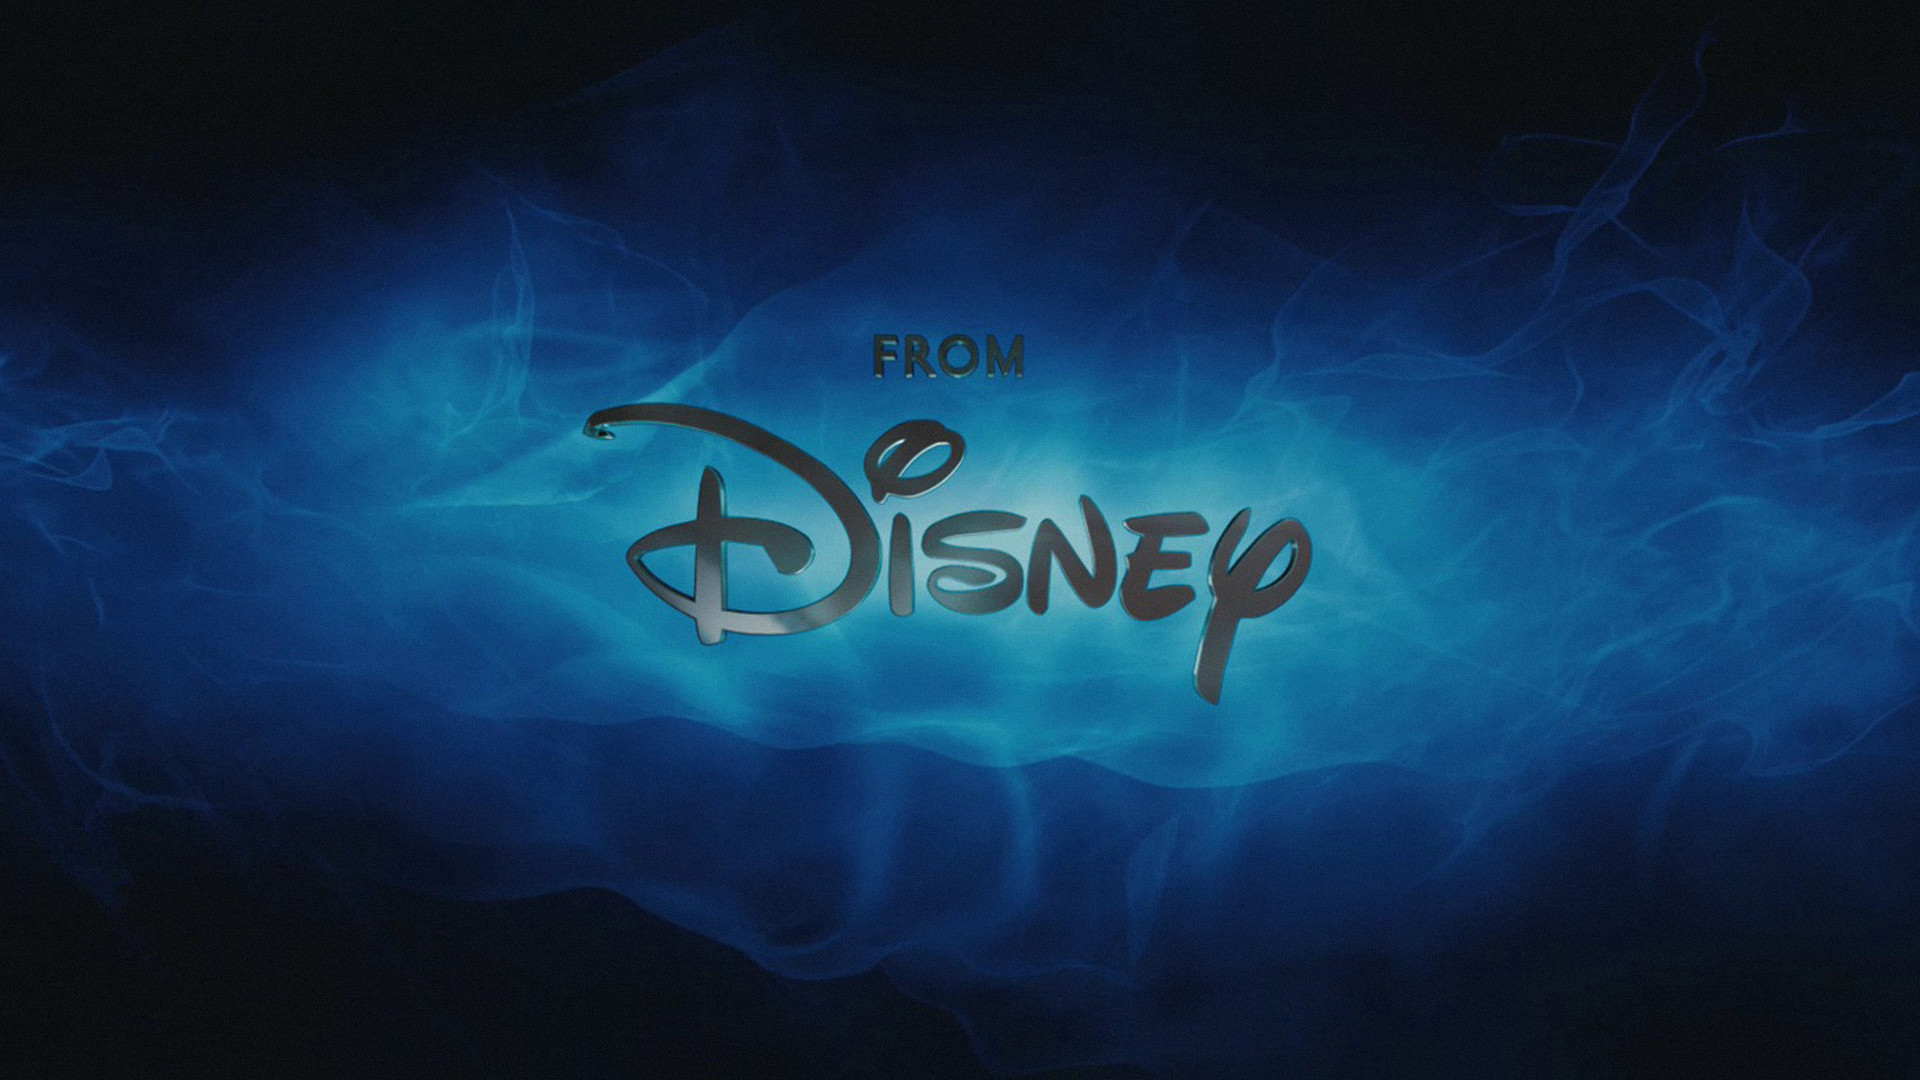 Disney Desktop Backgrounds 183 ① Wallpapertag